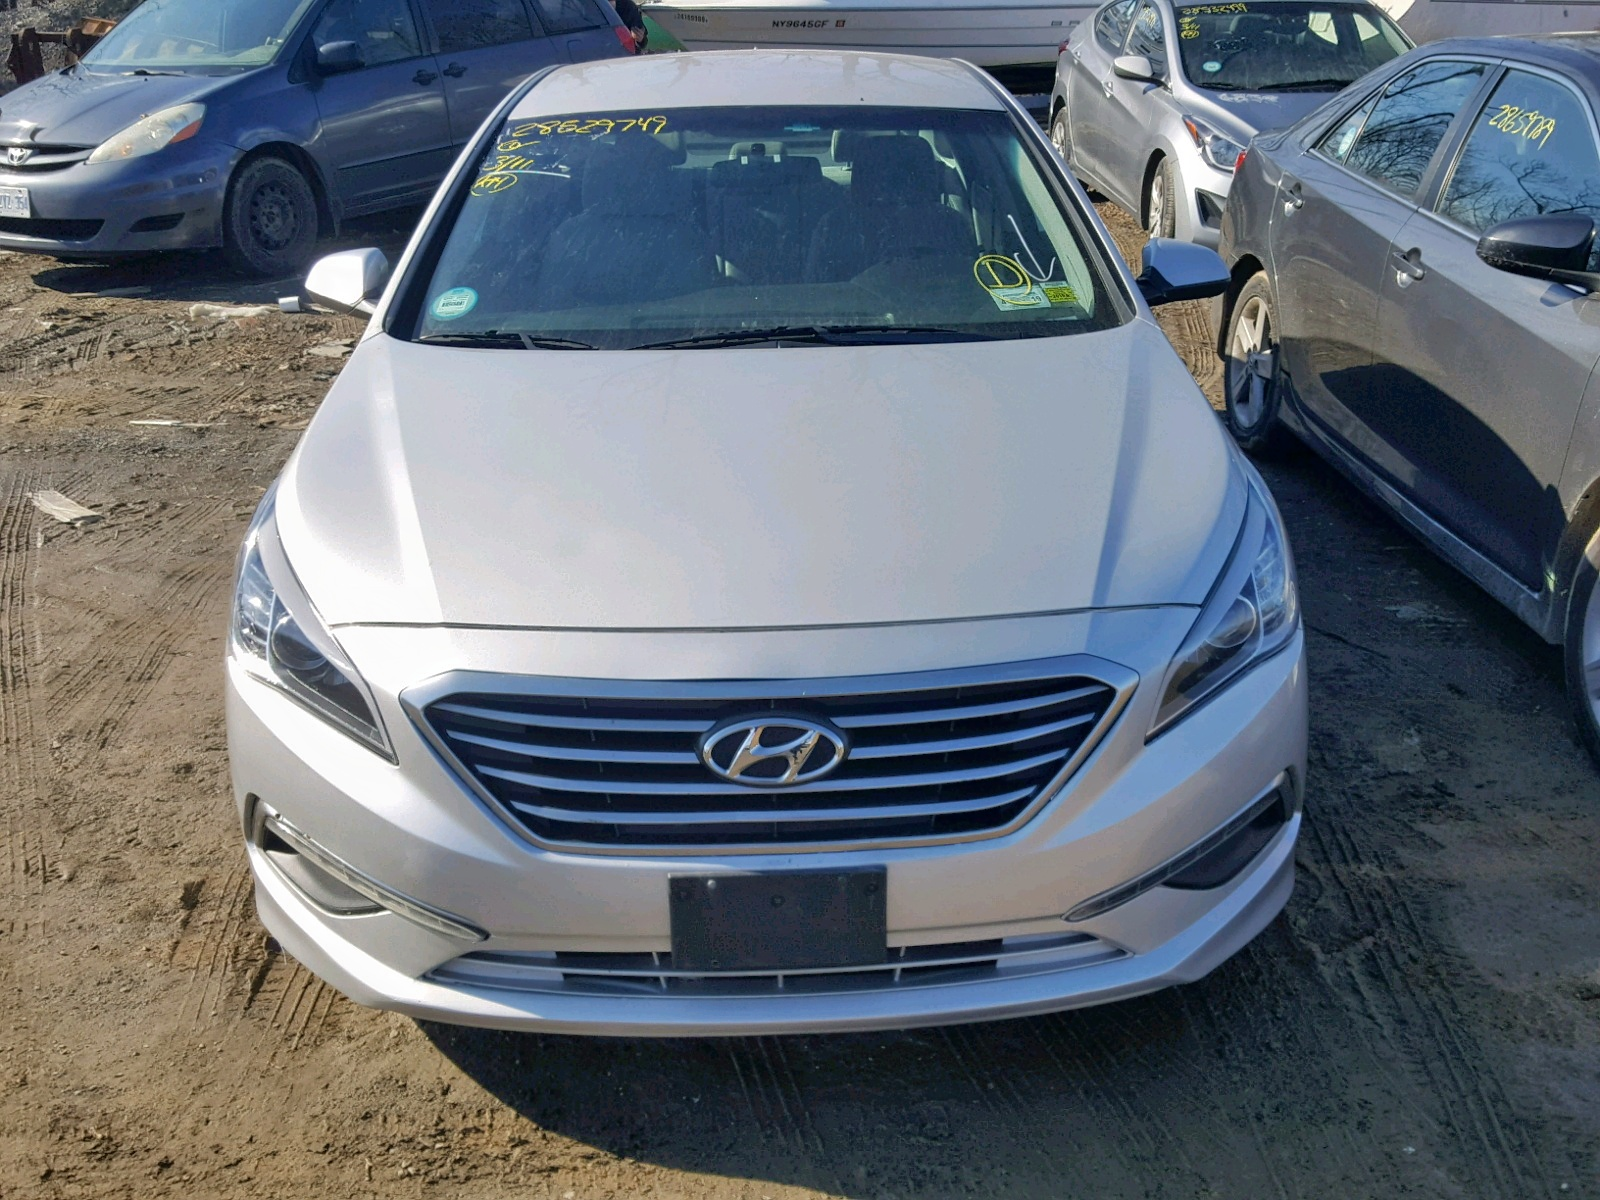 2015 Hyundai Sonata Se 2.4L engine view